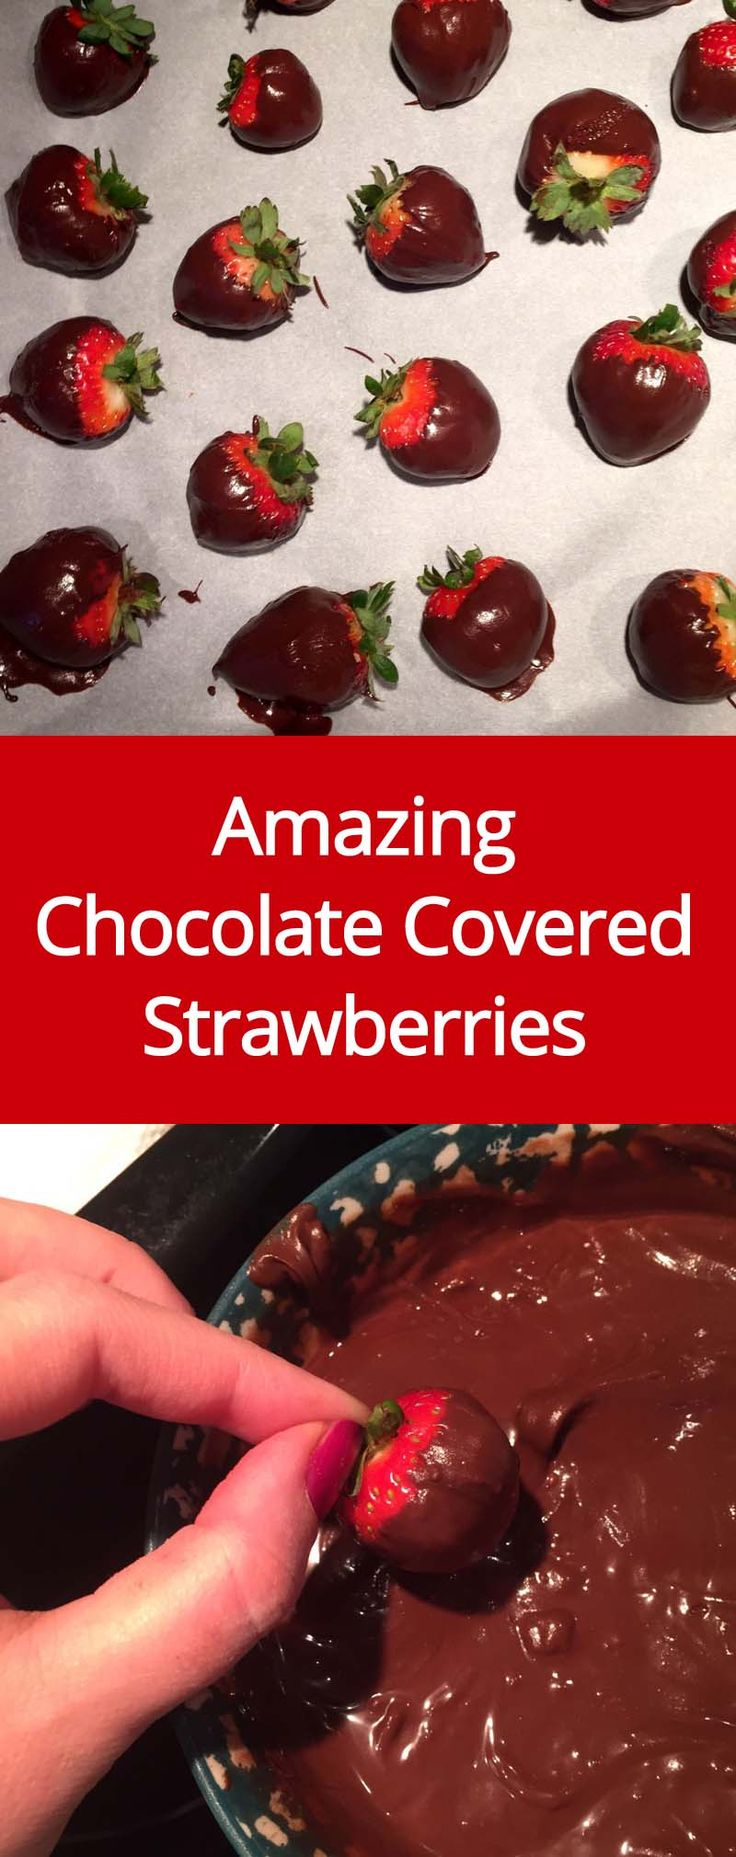 Easy Chocolate-Covered Strawberries Recipe - How To Make Chocolate Dipped Strawberries | MelanieCooks.com